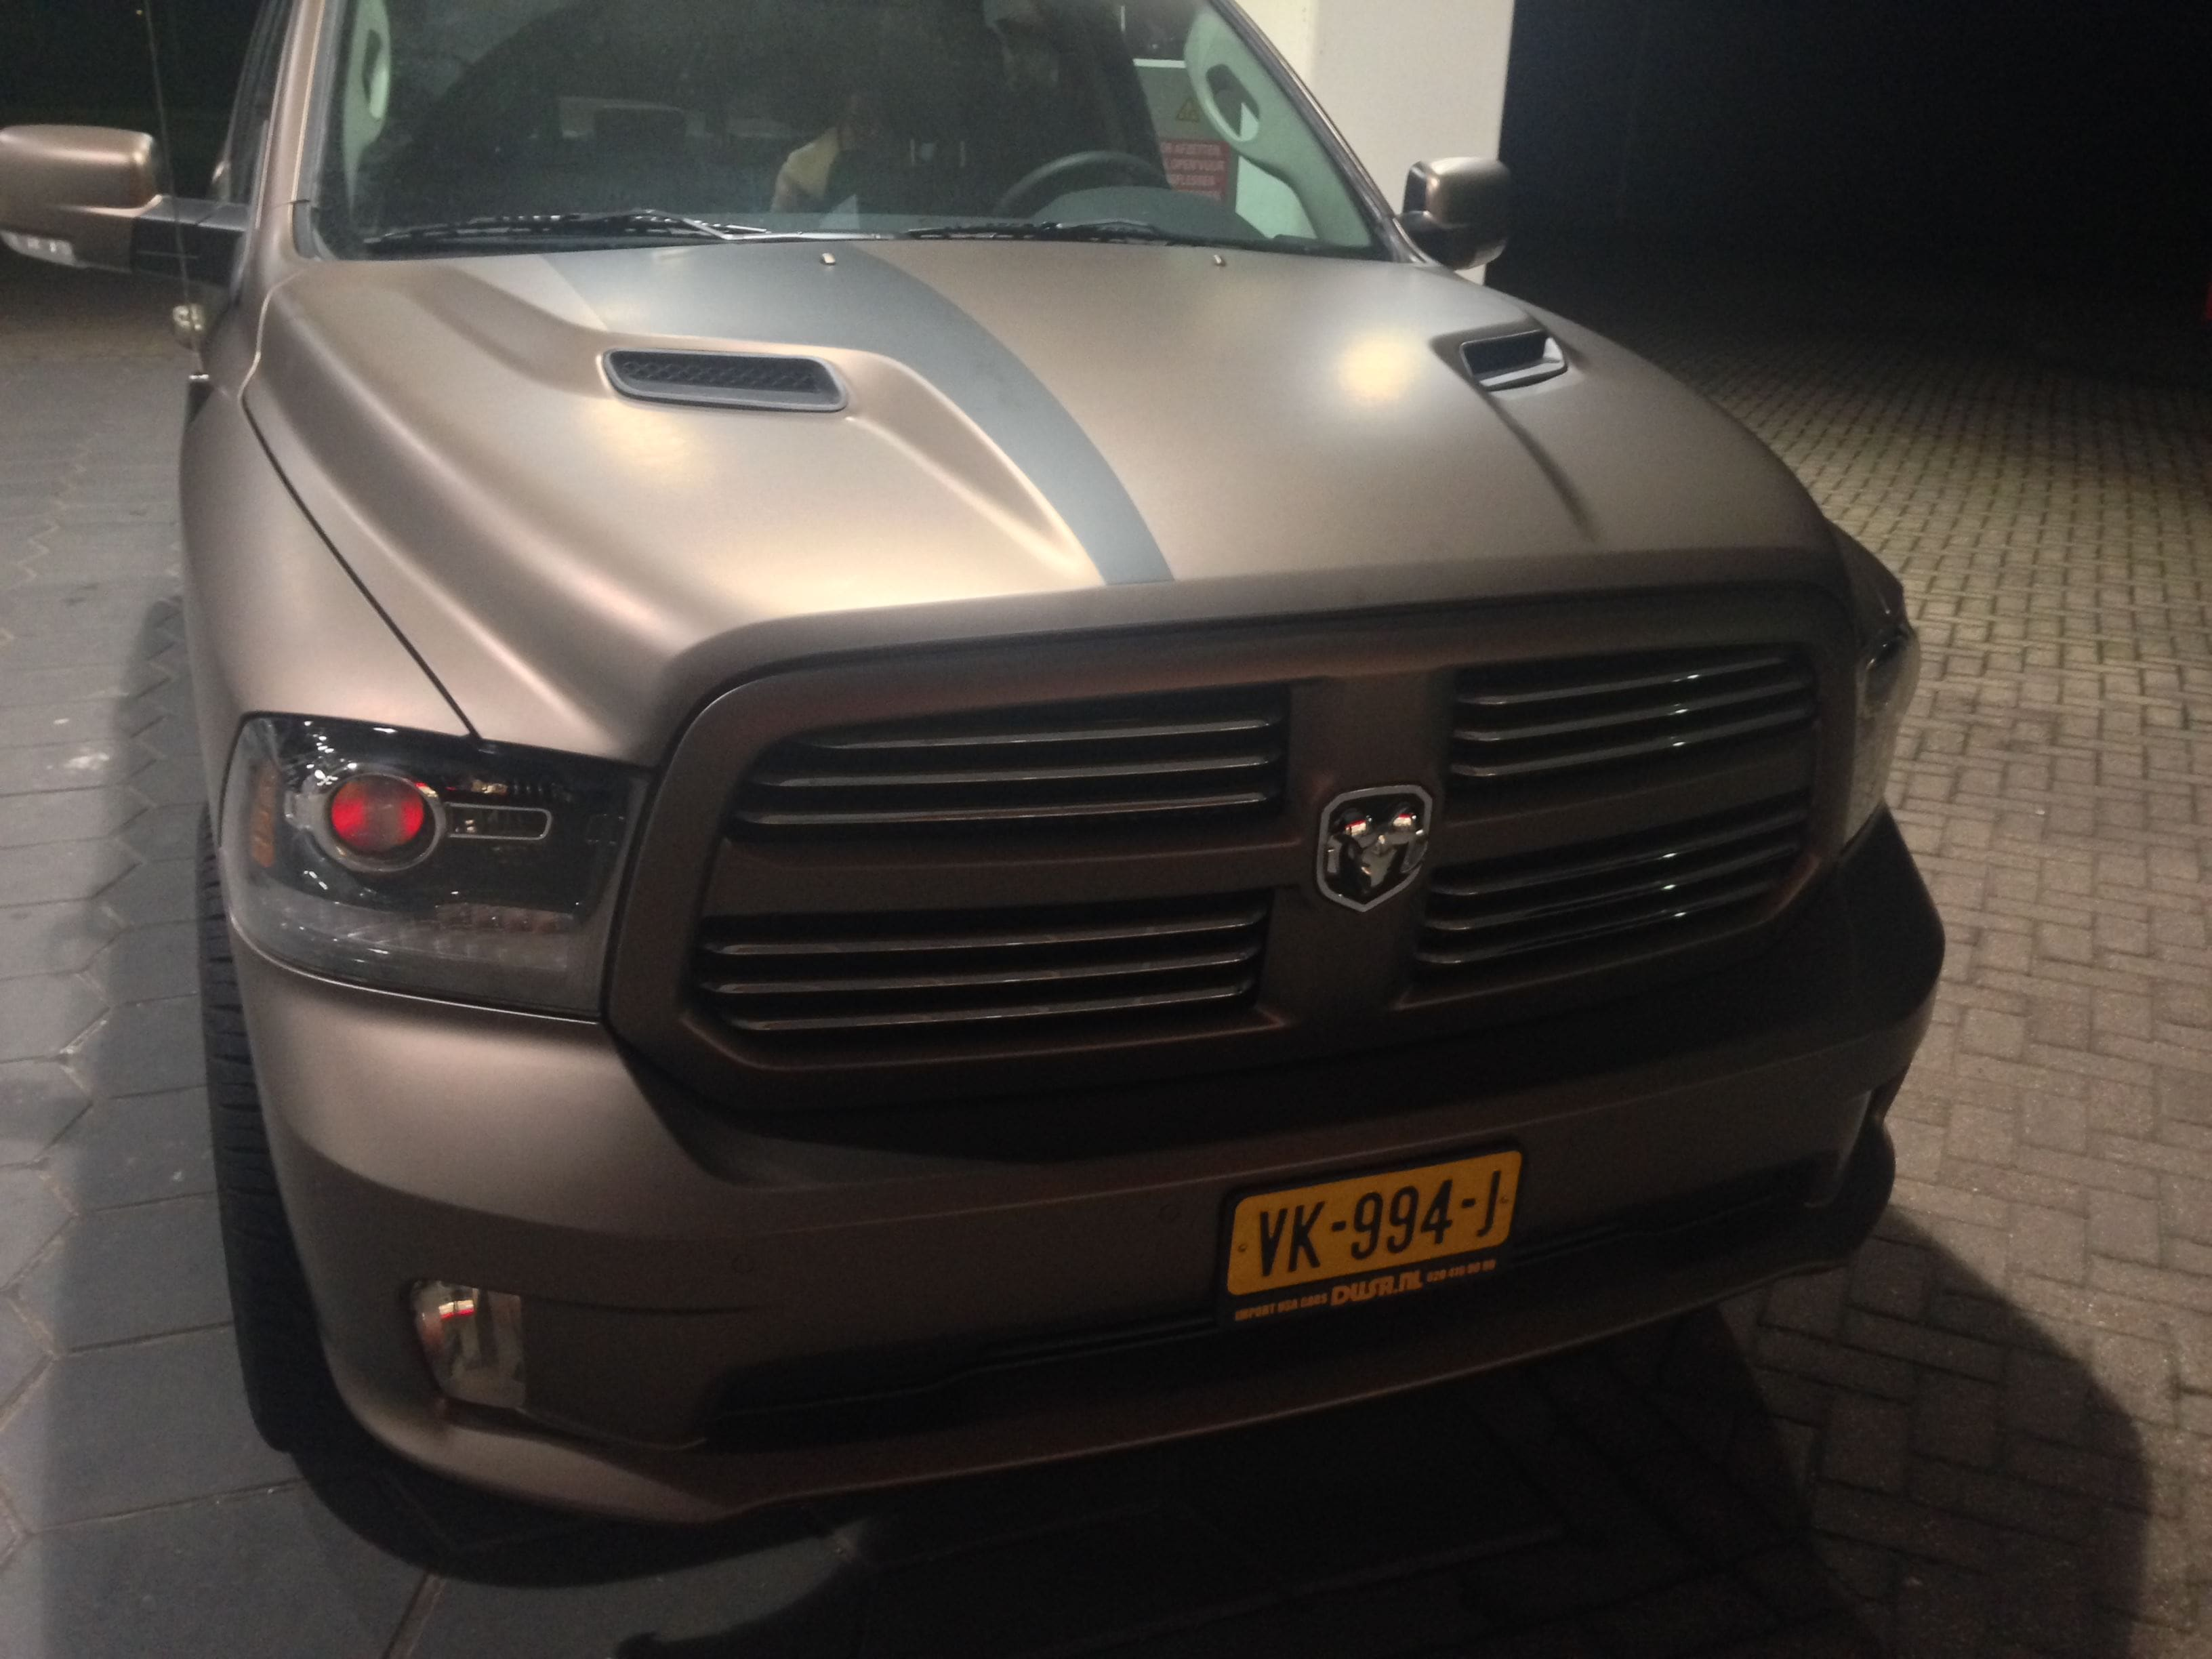 Dodge ram in een Mat metallic Brown Wrap, Carwrapping door Wrapmyride.nu Foto-nr:5613, ©2021